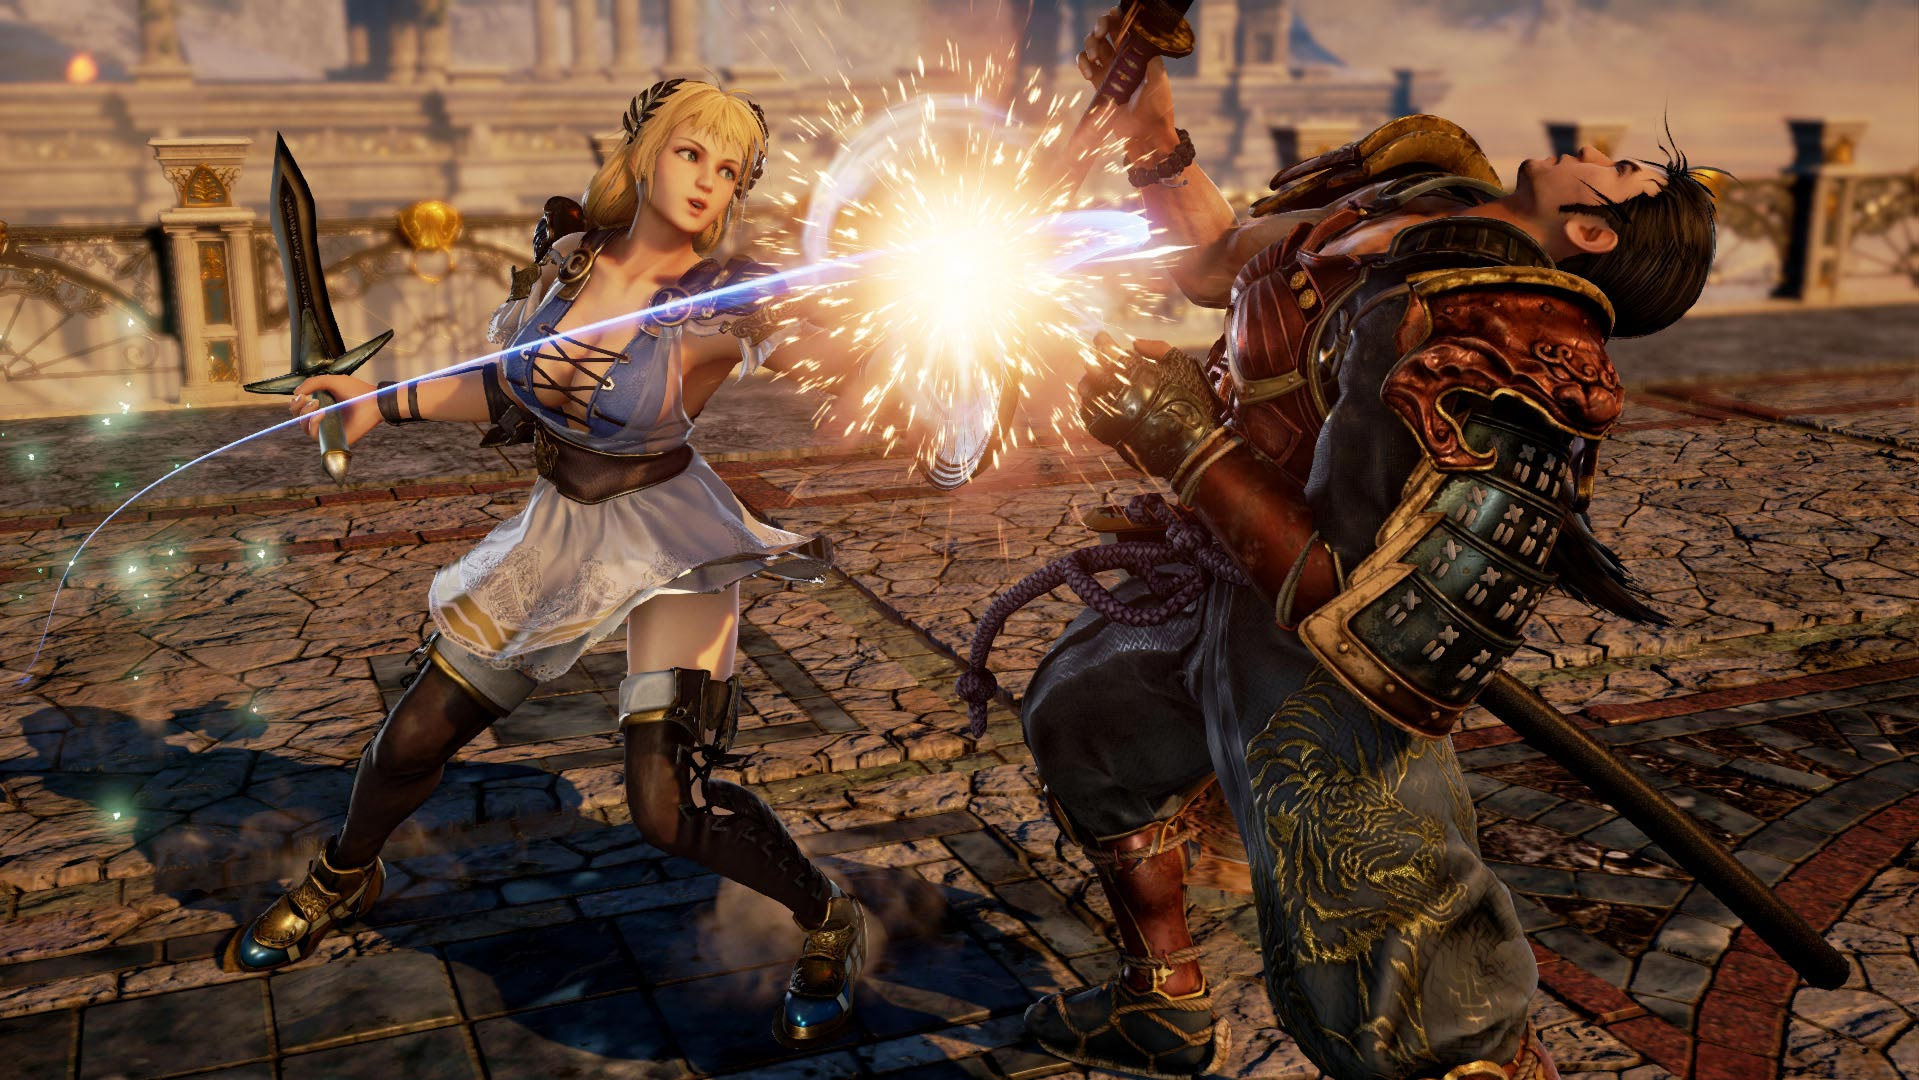 Soul Calibur 6 screeshots 6 out of 16 image gallery